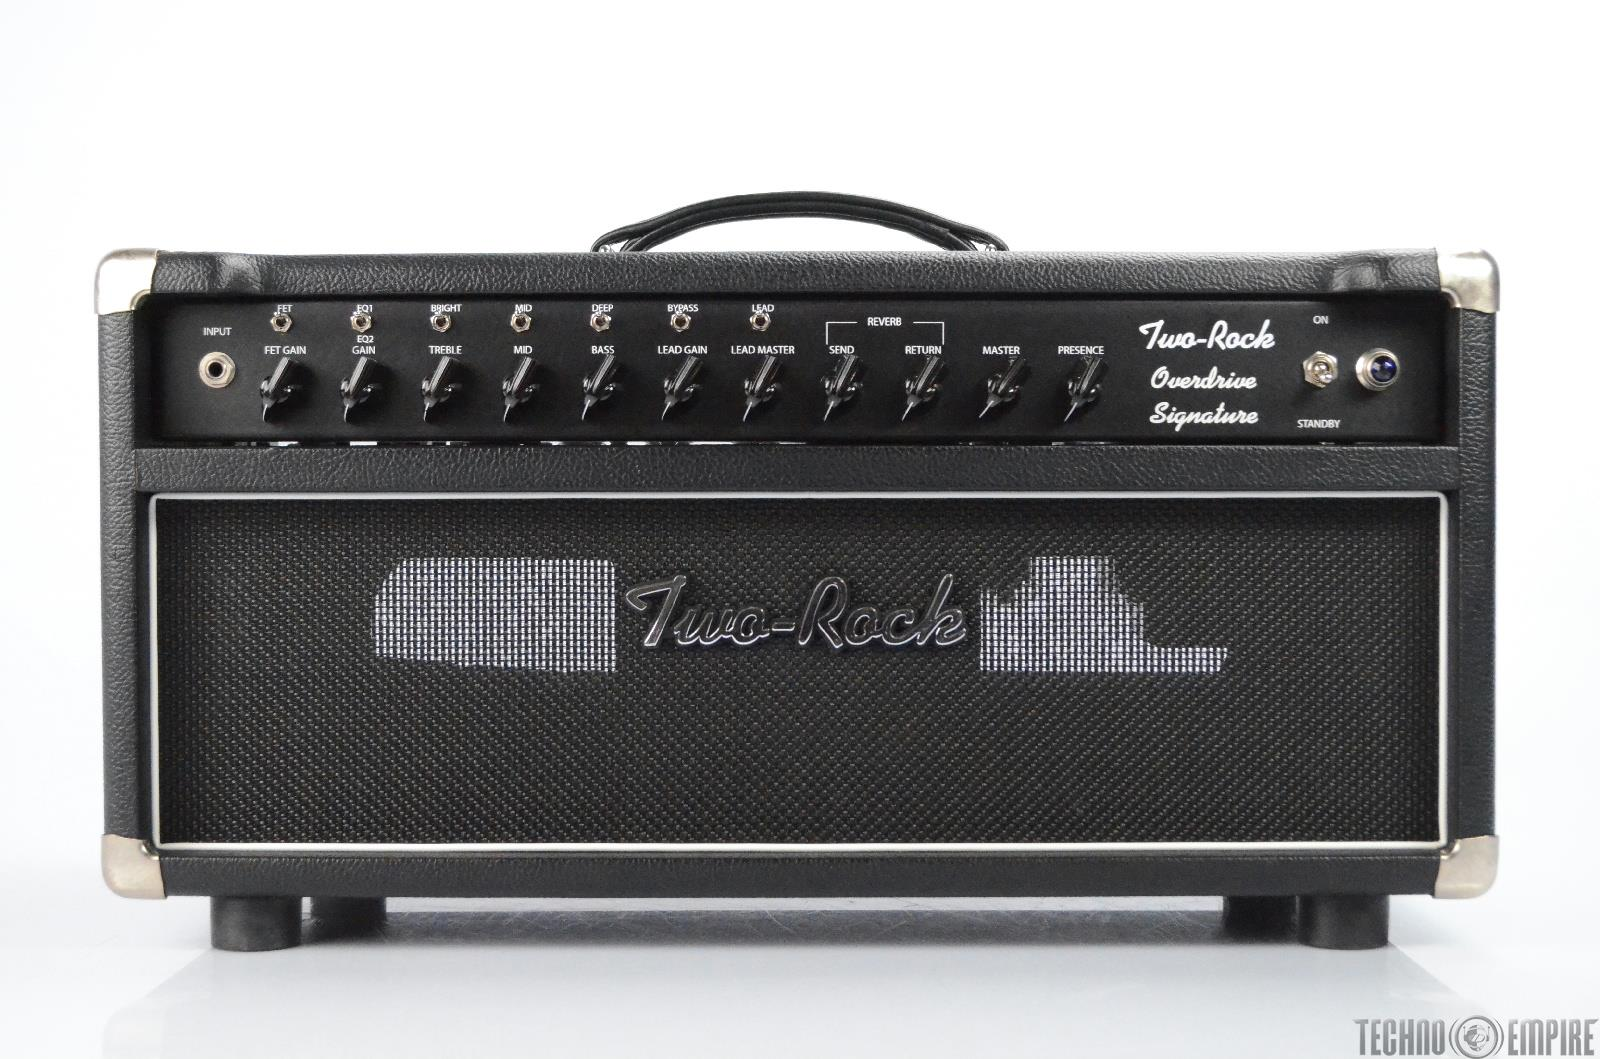 Two Rock Overdrive Signature Electric Guitar Tube Amplifier #025 Amp Head #31299